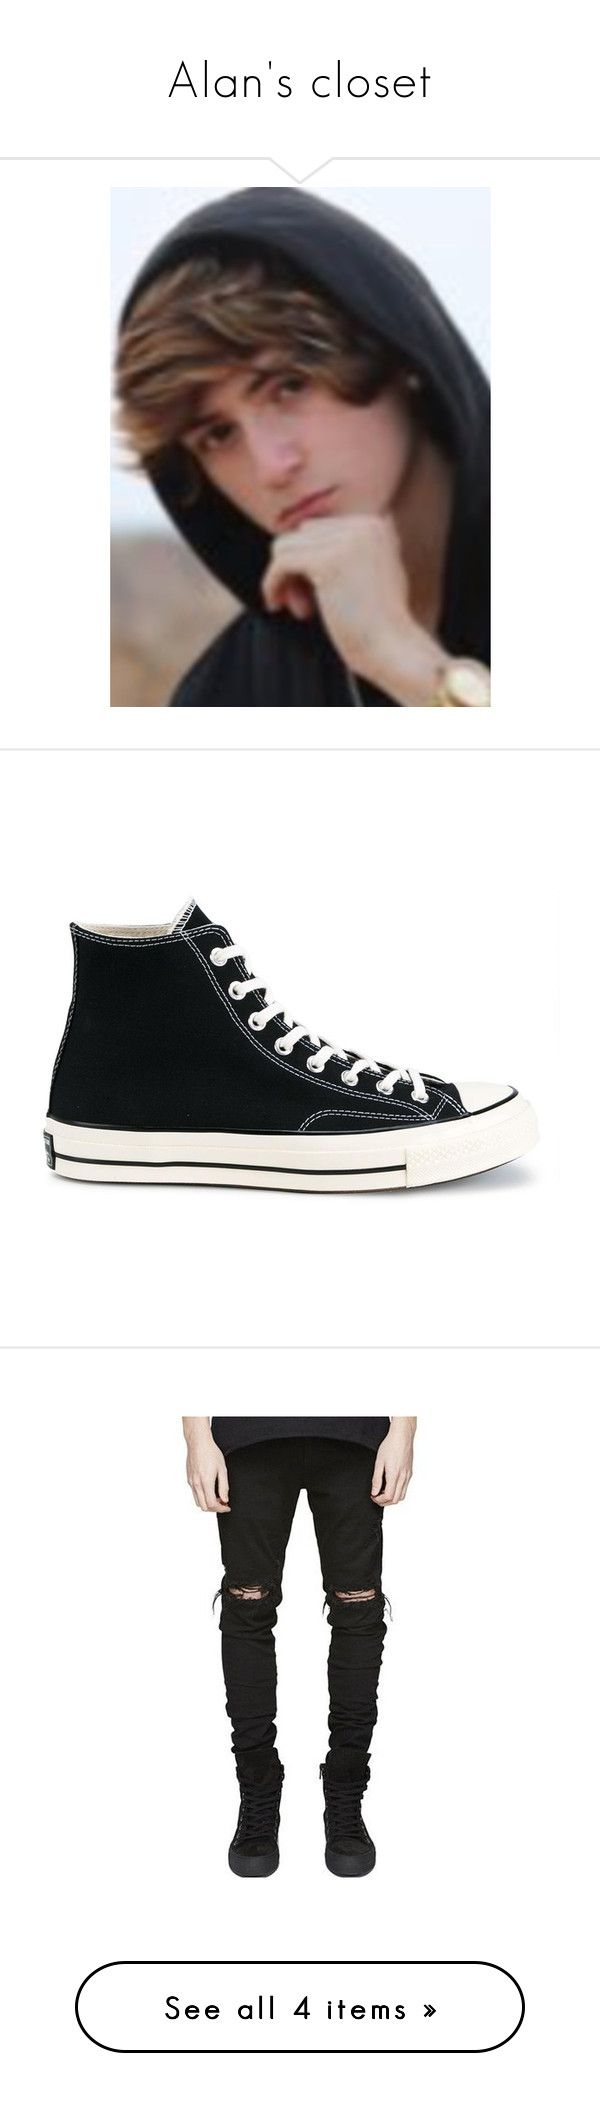 """""""Alan's closet"""" by llamasandcake ❤ liked on Polyvore featuring men's fashion, men's shoes, men's sneakers, shoes, black, mens black high top shoes, converse mens shoes, mens high top sneakers, mens black high top sneakers and mens black shoes"""